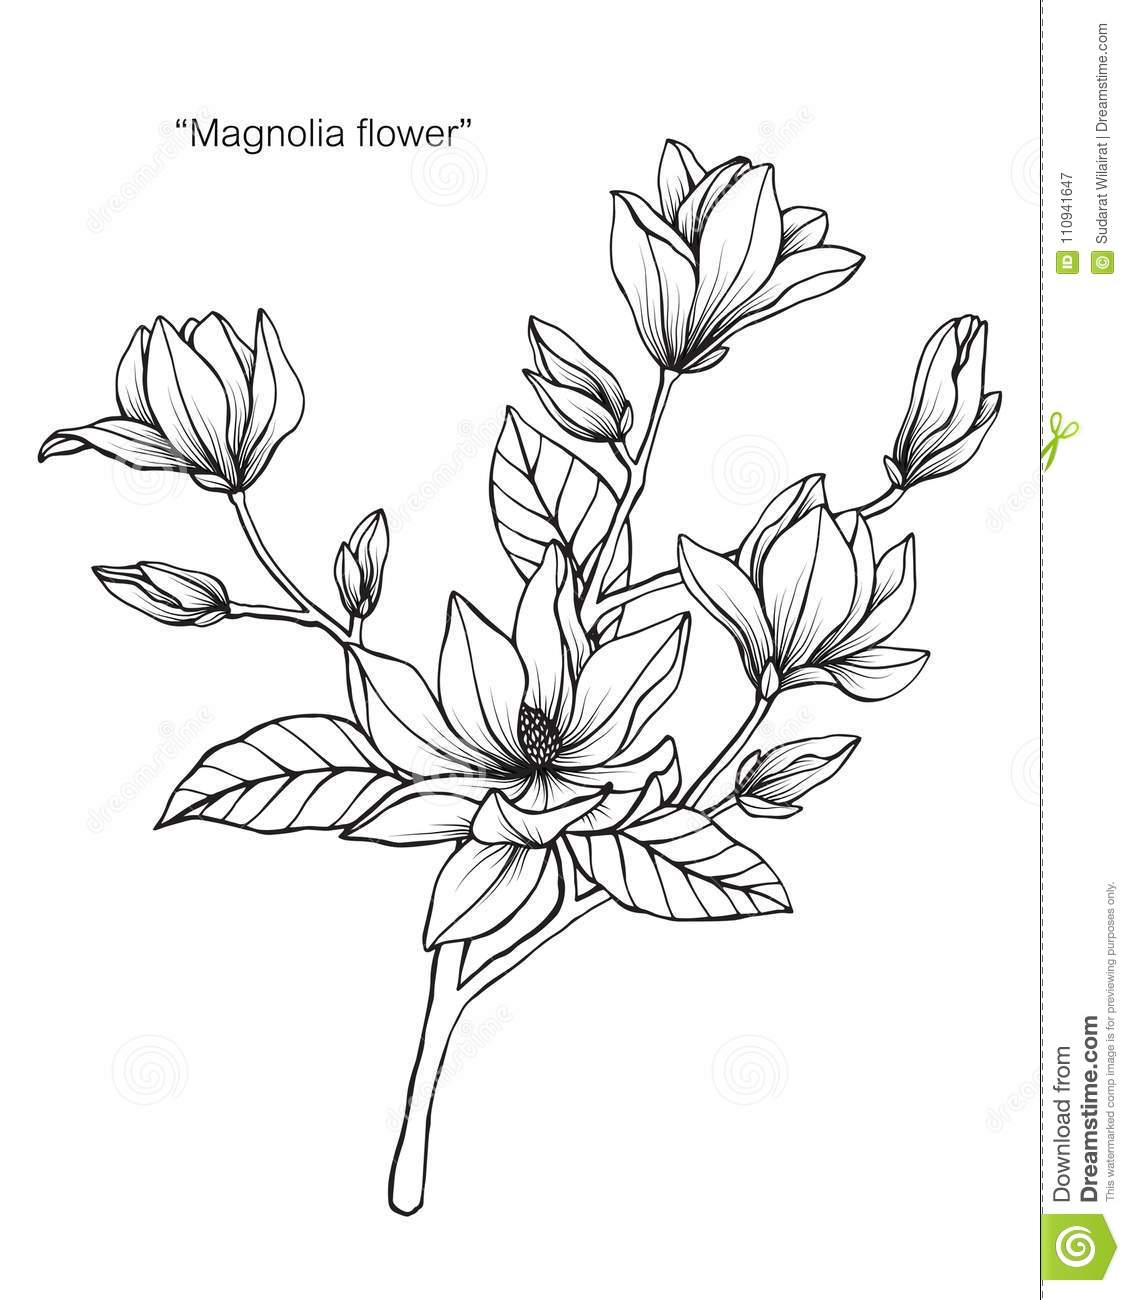 Magnolia Flower Line Drawing : Magnolia flower drawing illustration black and white with